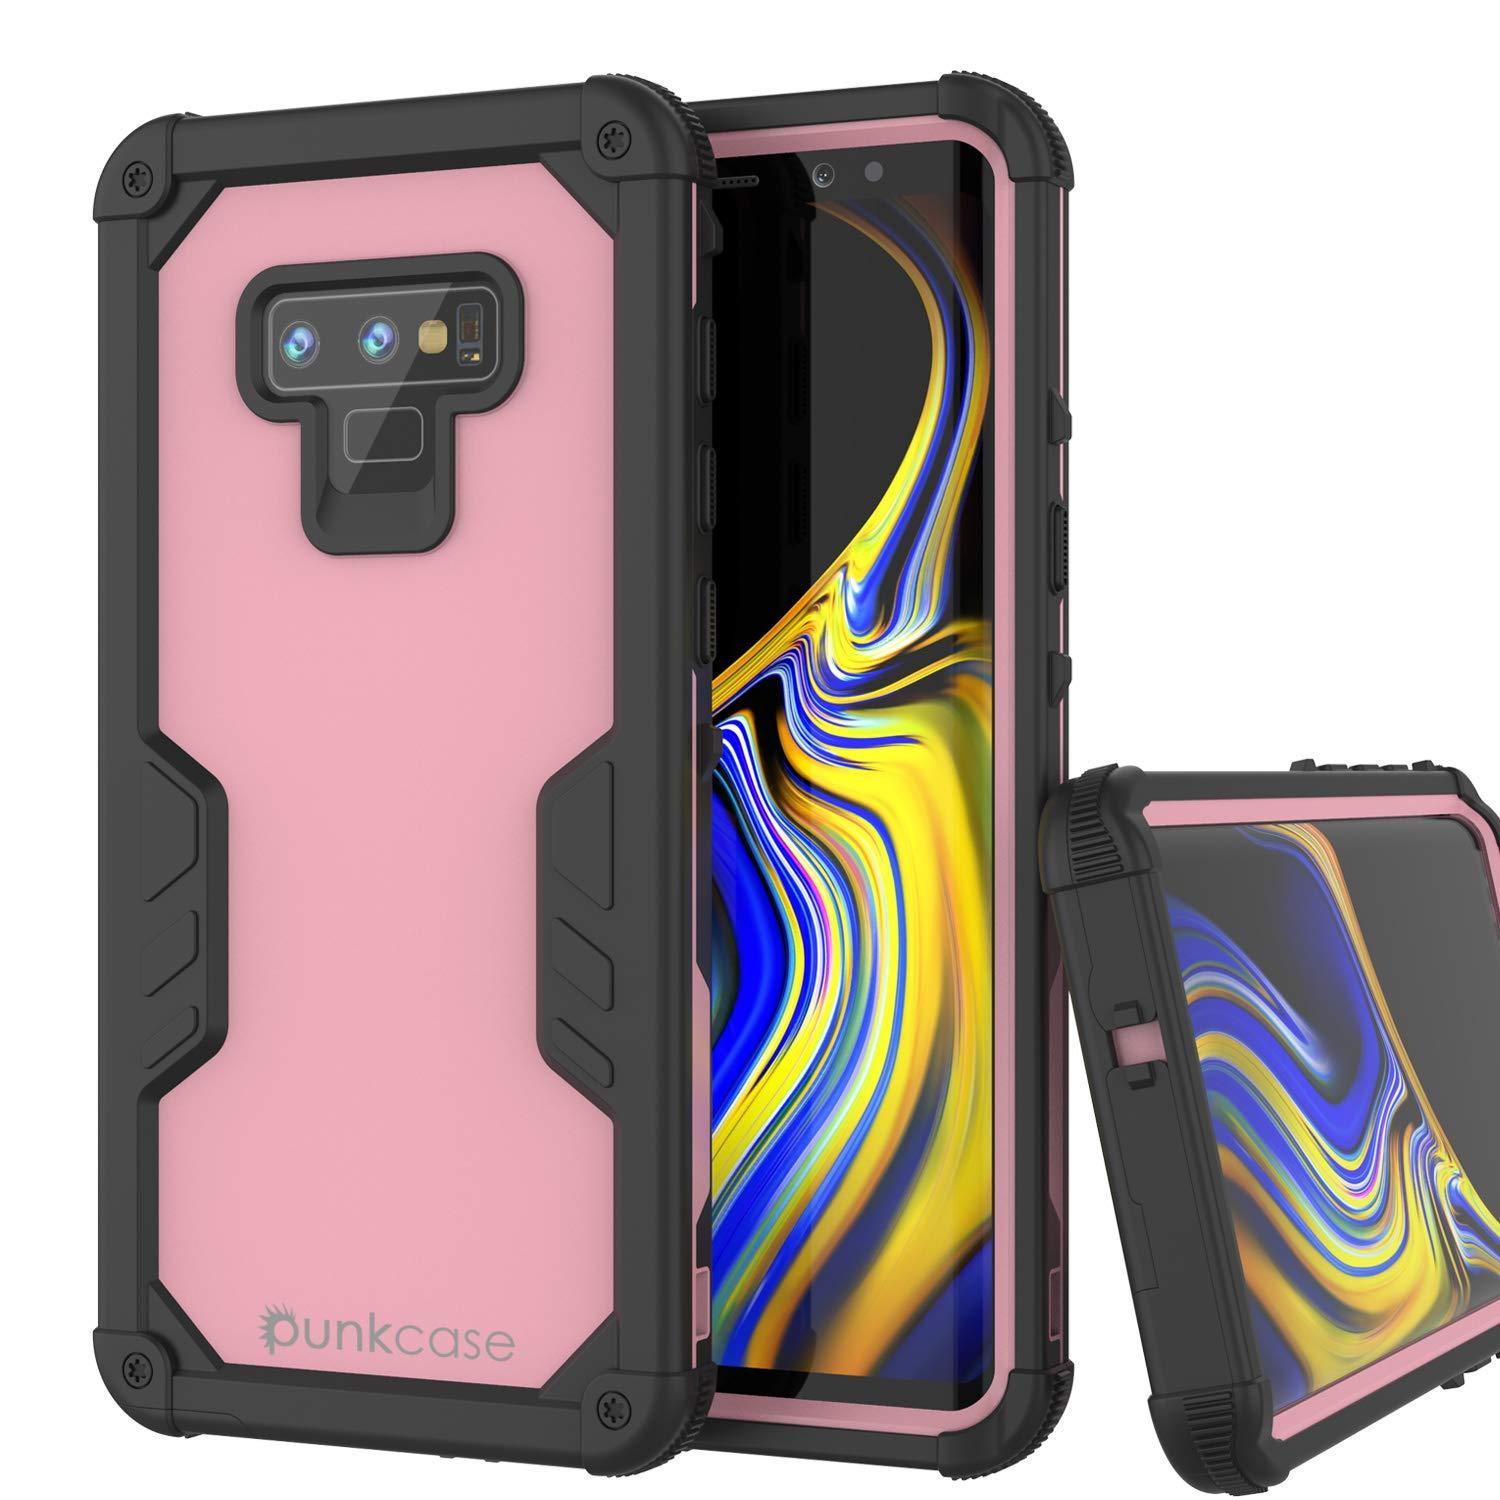 Punkcase Galaxy Note 9 Waterproof Case [Navy Seal Extreme Series] Armor Cover W/ Built In Screen Protector [Pink]